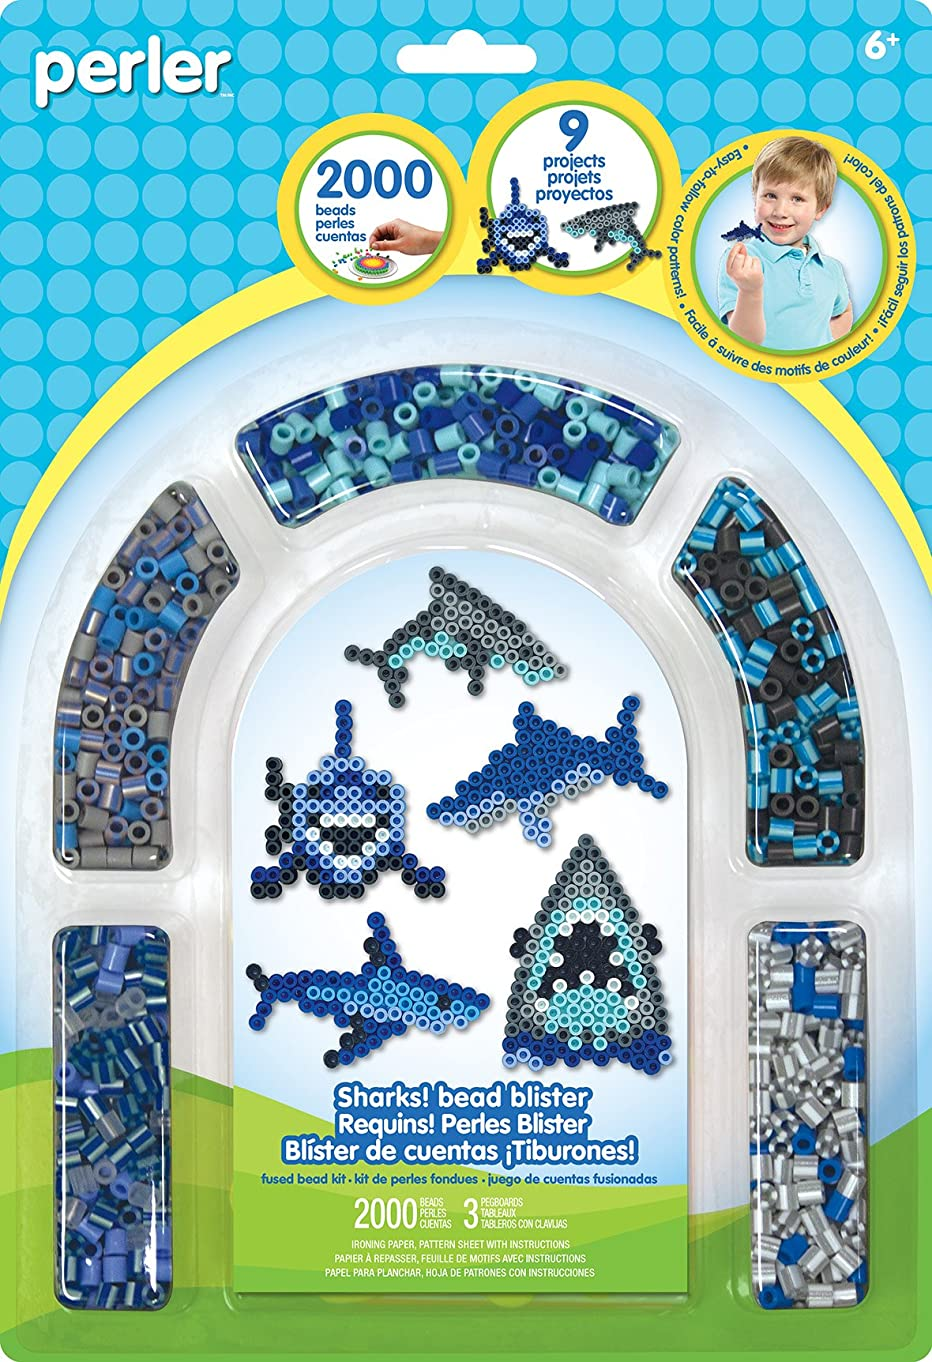 Perler Bead 'Shark' Fuse Bead Activity Kit for Kids Crafts, 2004 pcs